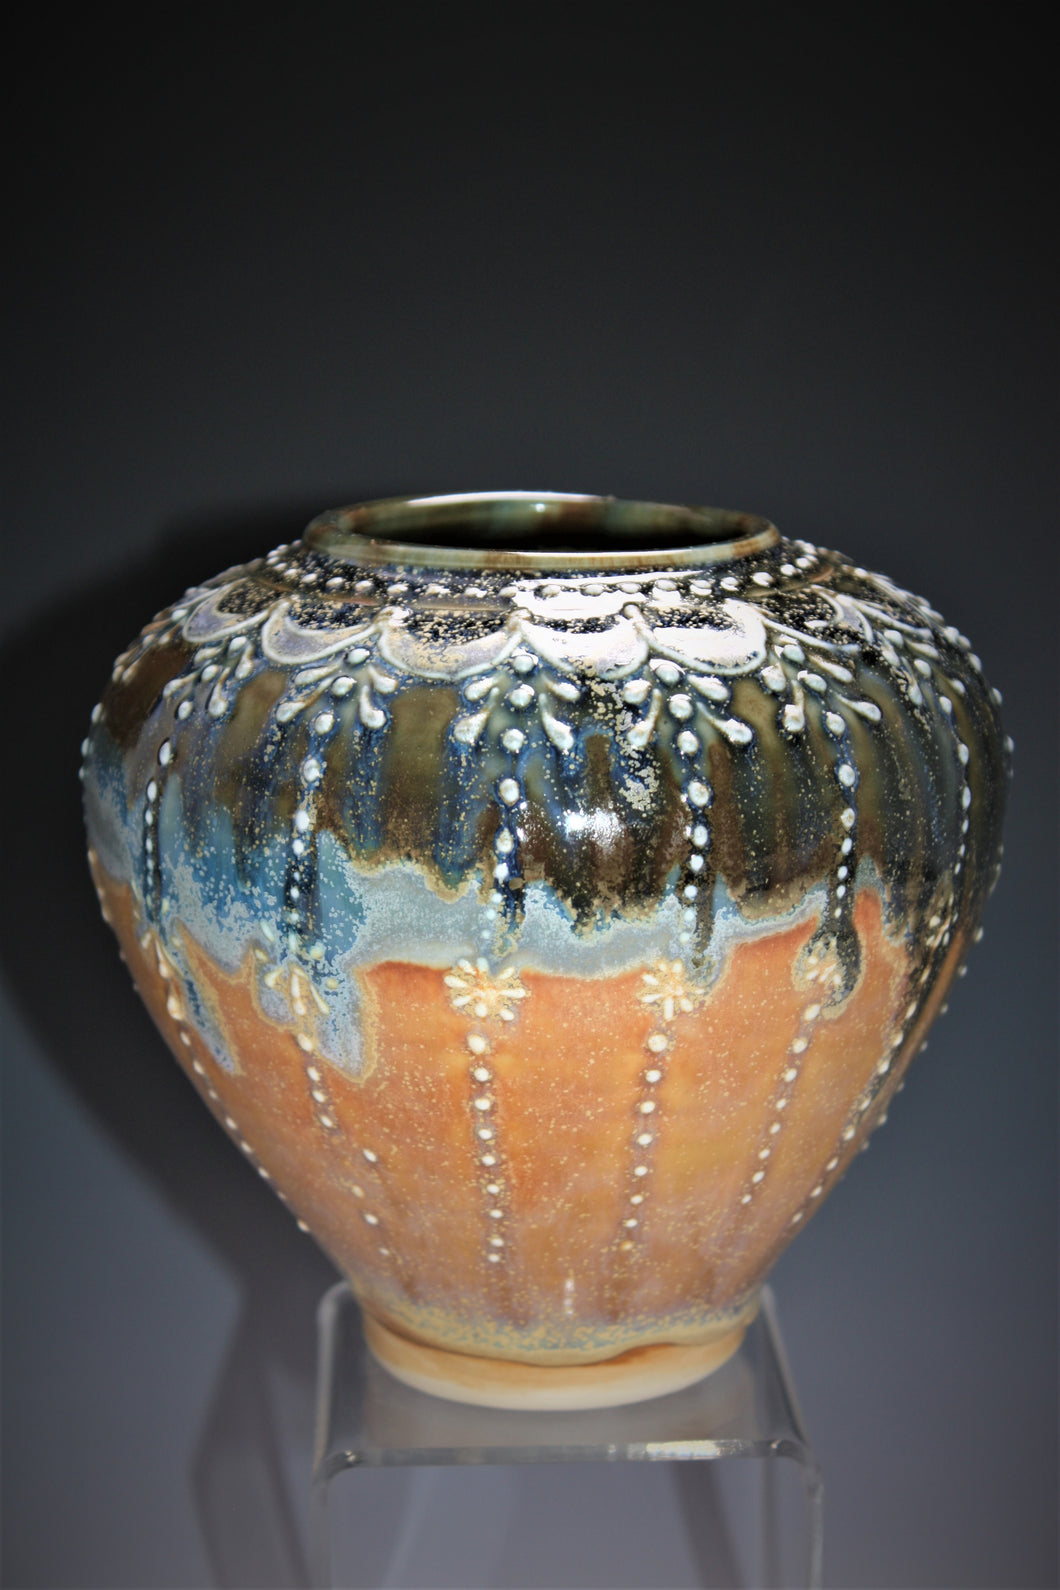 Studio Pottery. Pottery Vase With Original Design Slip Trailed On The Surface. This Beautiful Vase Has Layered Glazes And High Fired In An Electric Kiln.